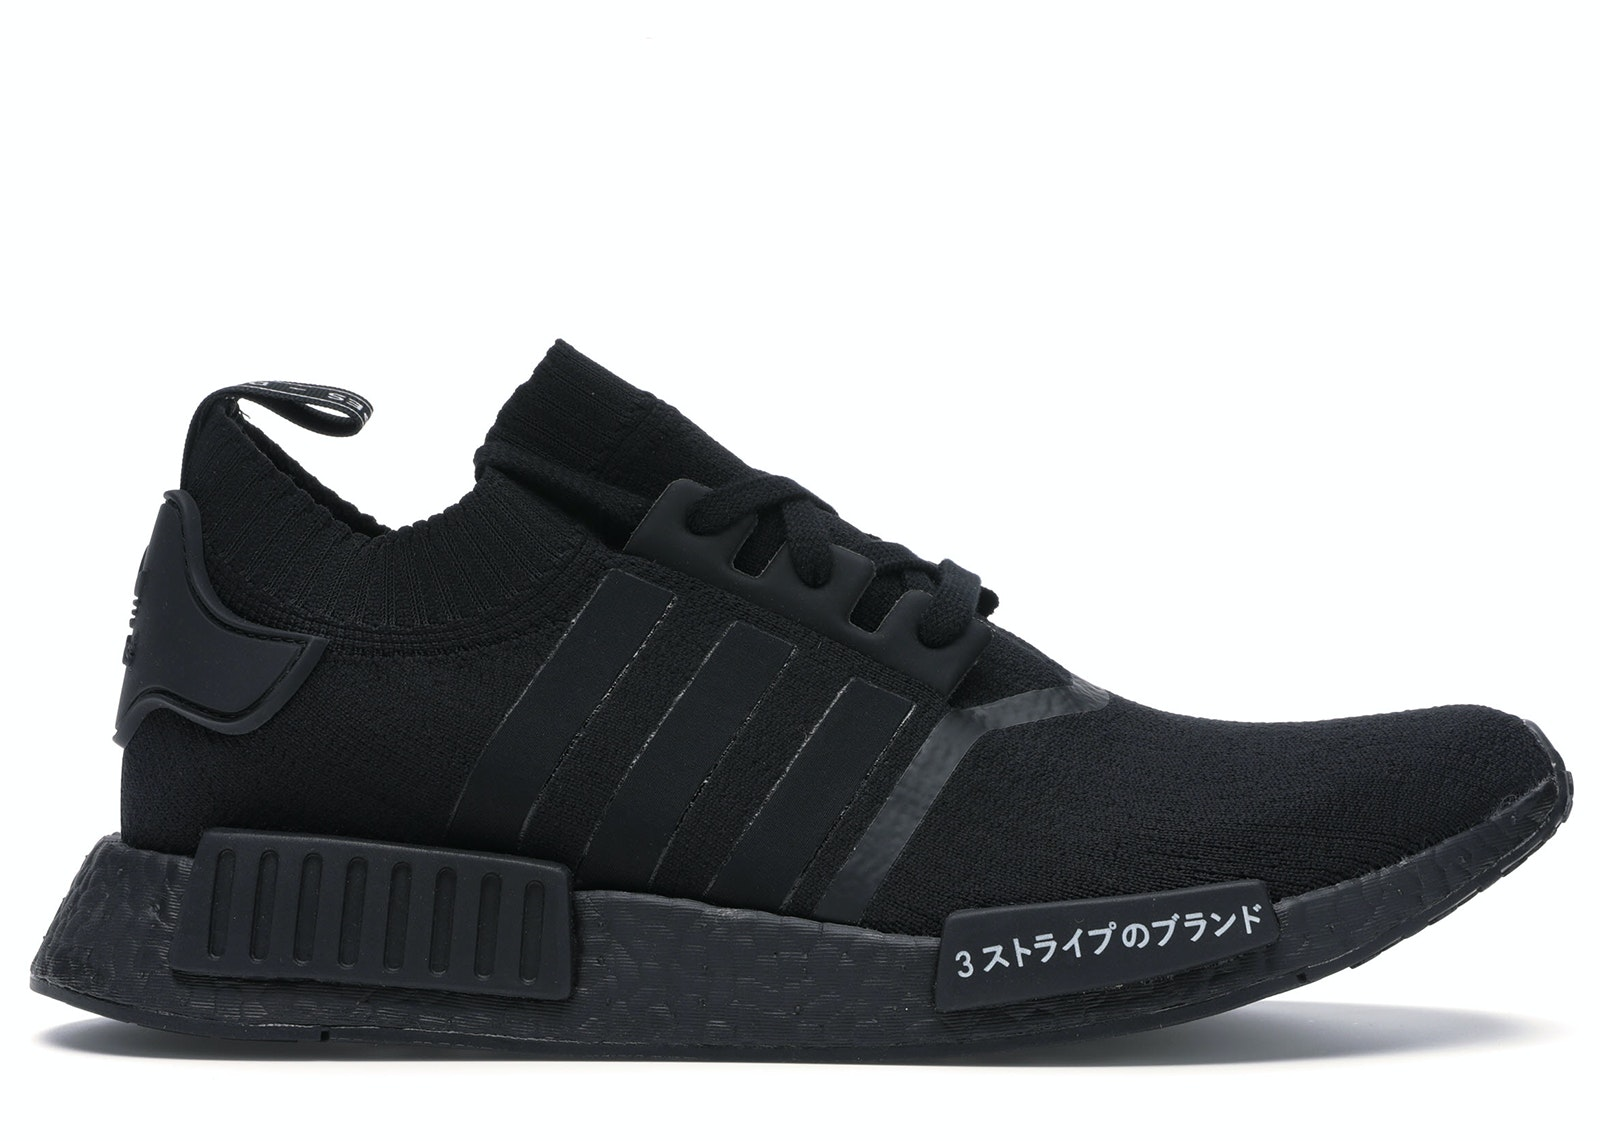 adidas shoes in japan